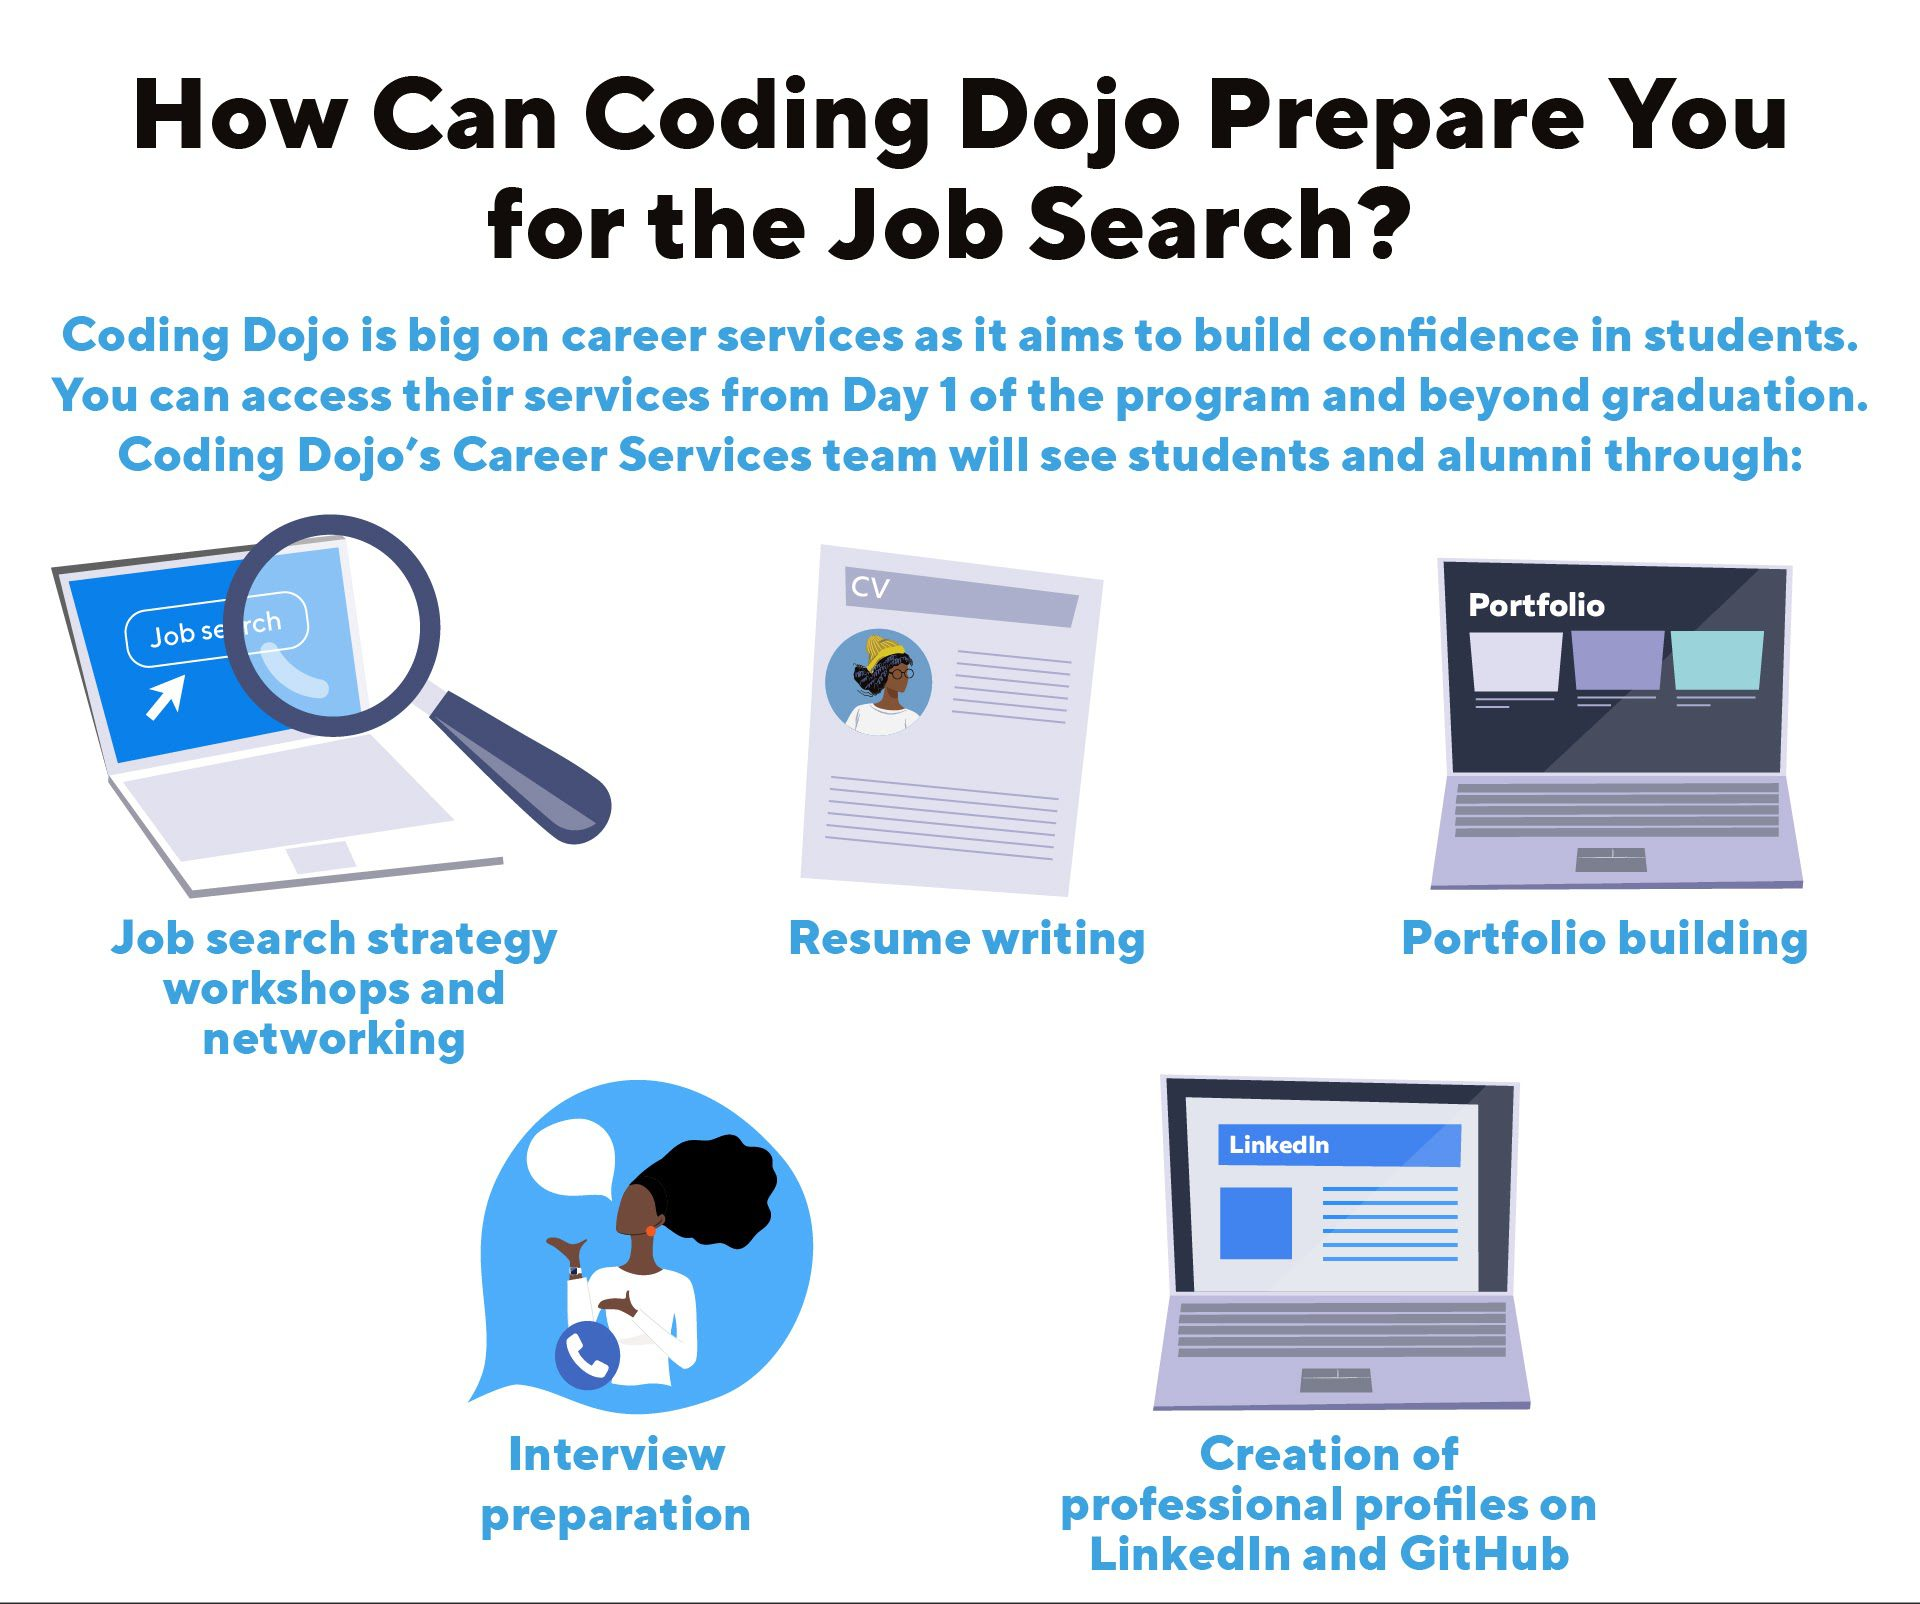 An infographic highlighting the key career services offered at Coding Dojo